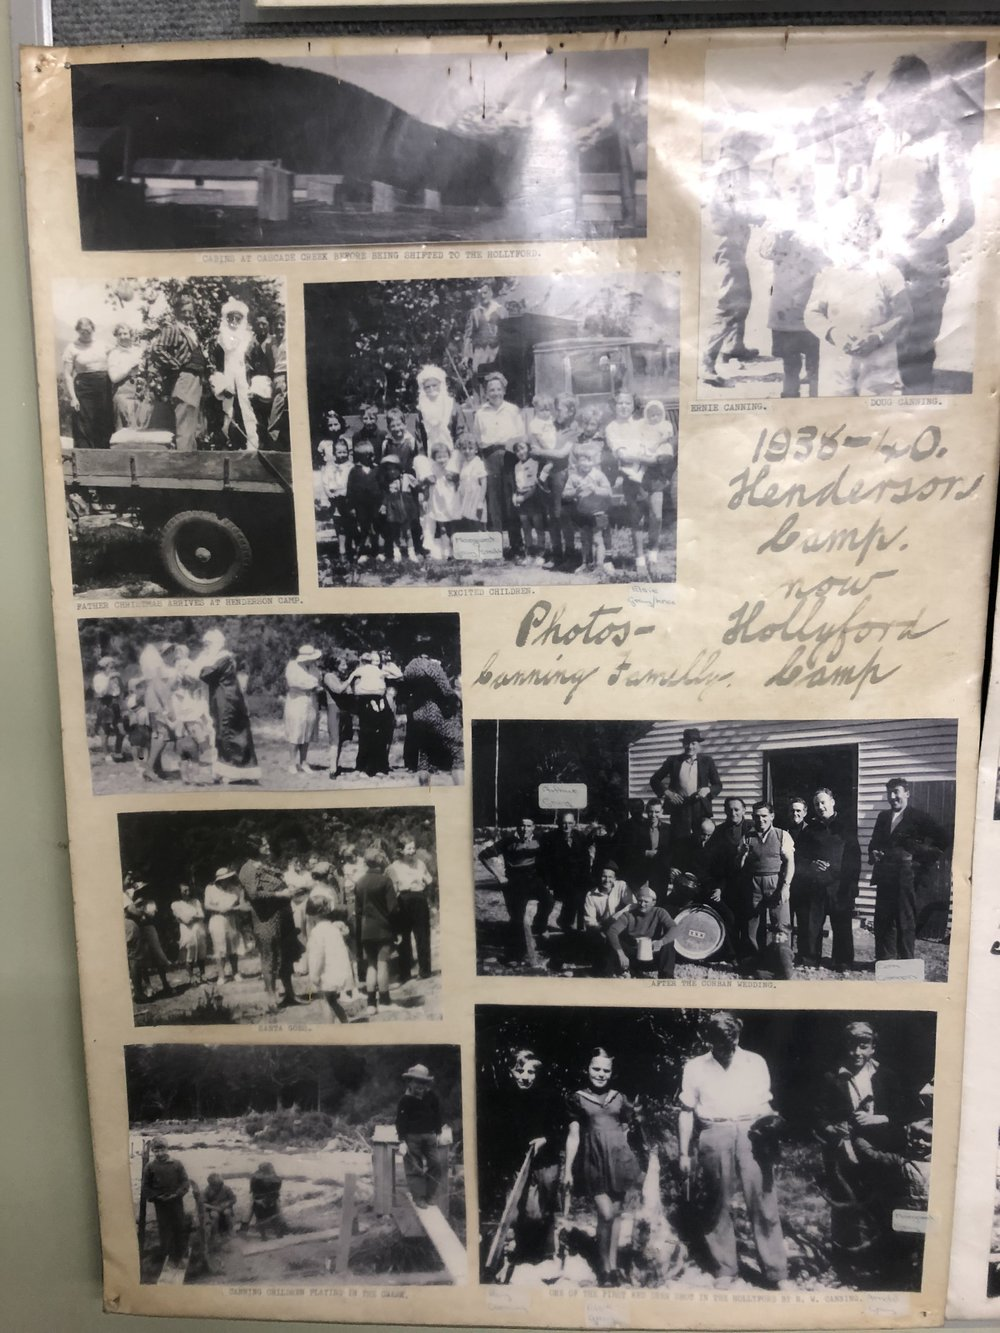 Photos and poems on the wall of the communal kitchen and lounge cabin at Gunn's Camp tell of the history of the site.